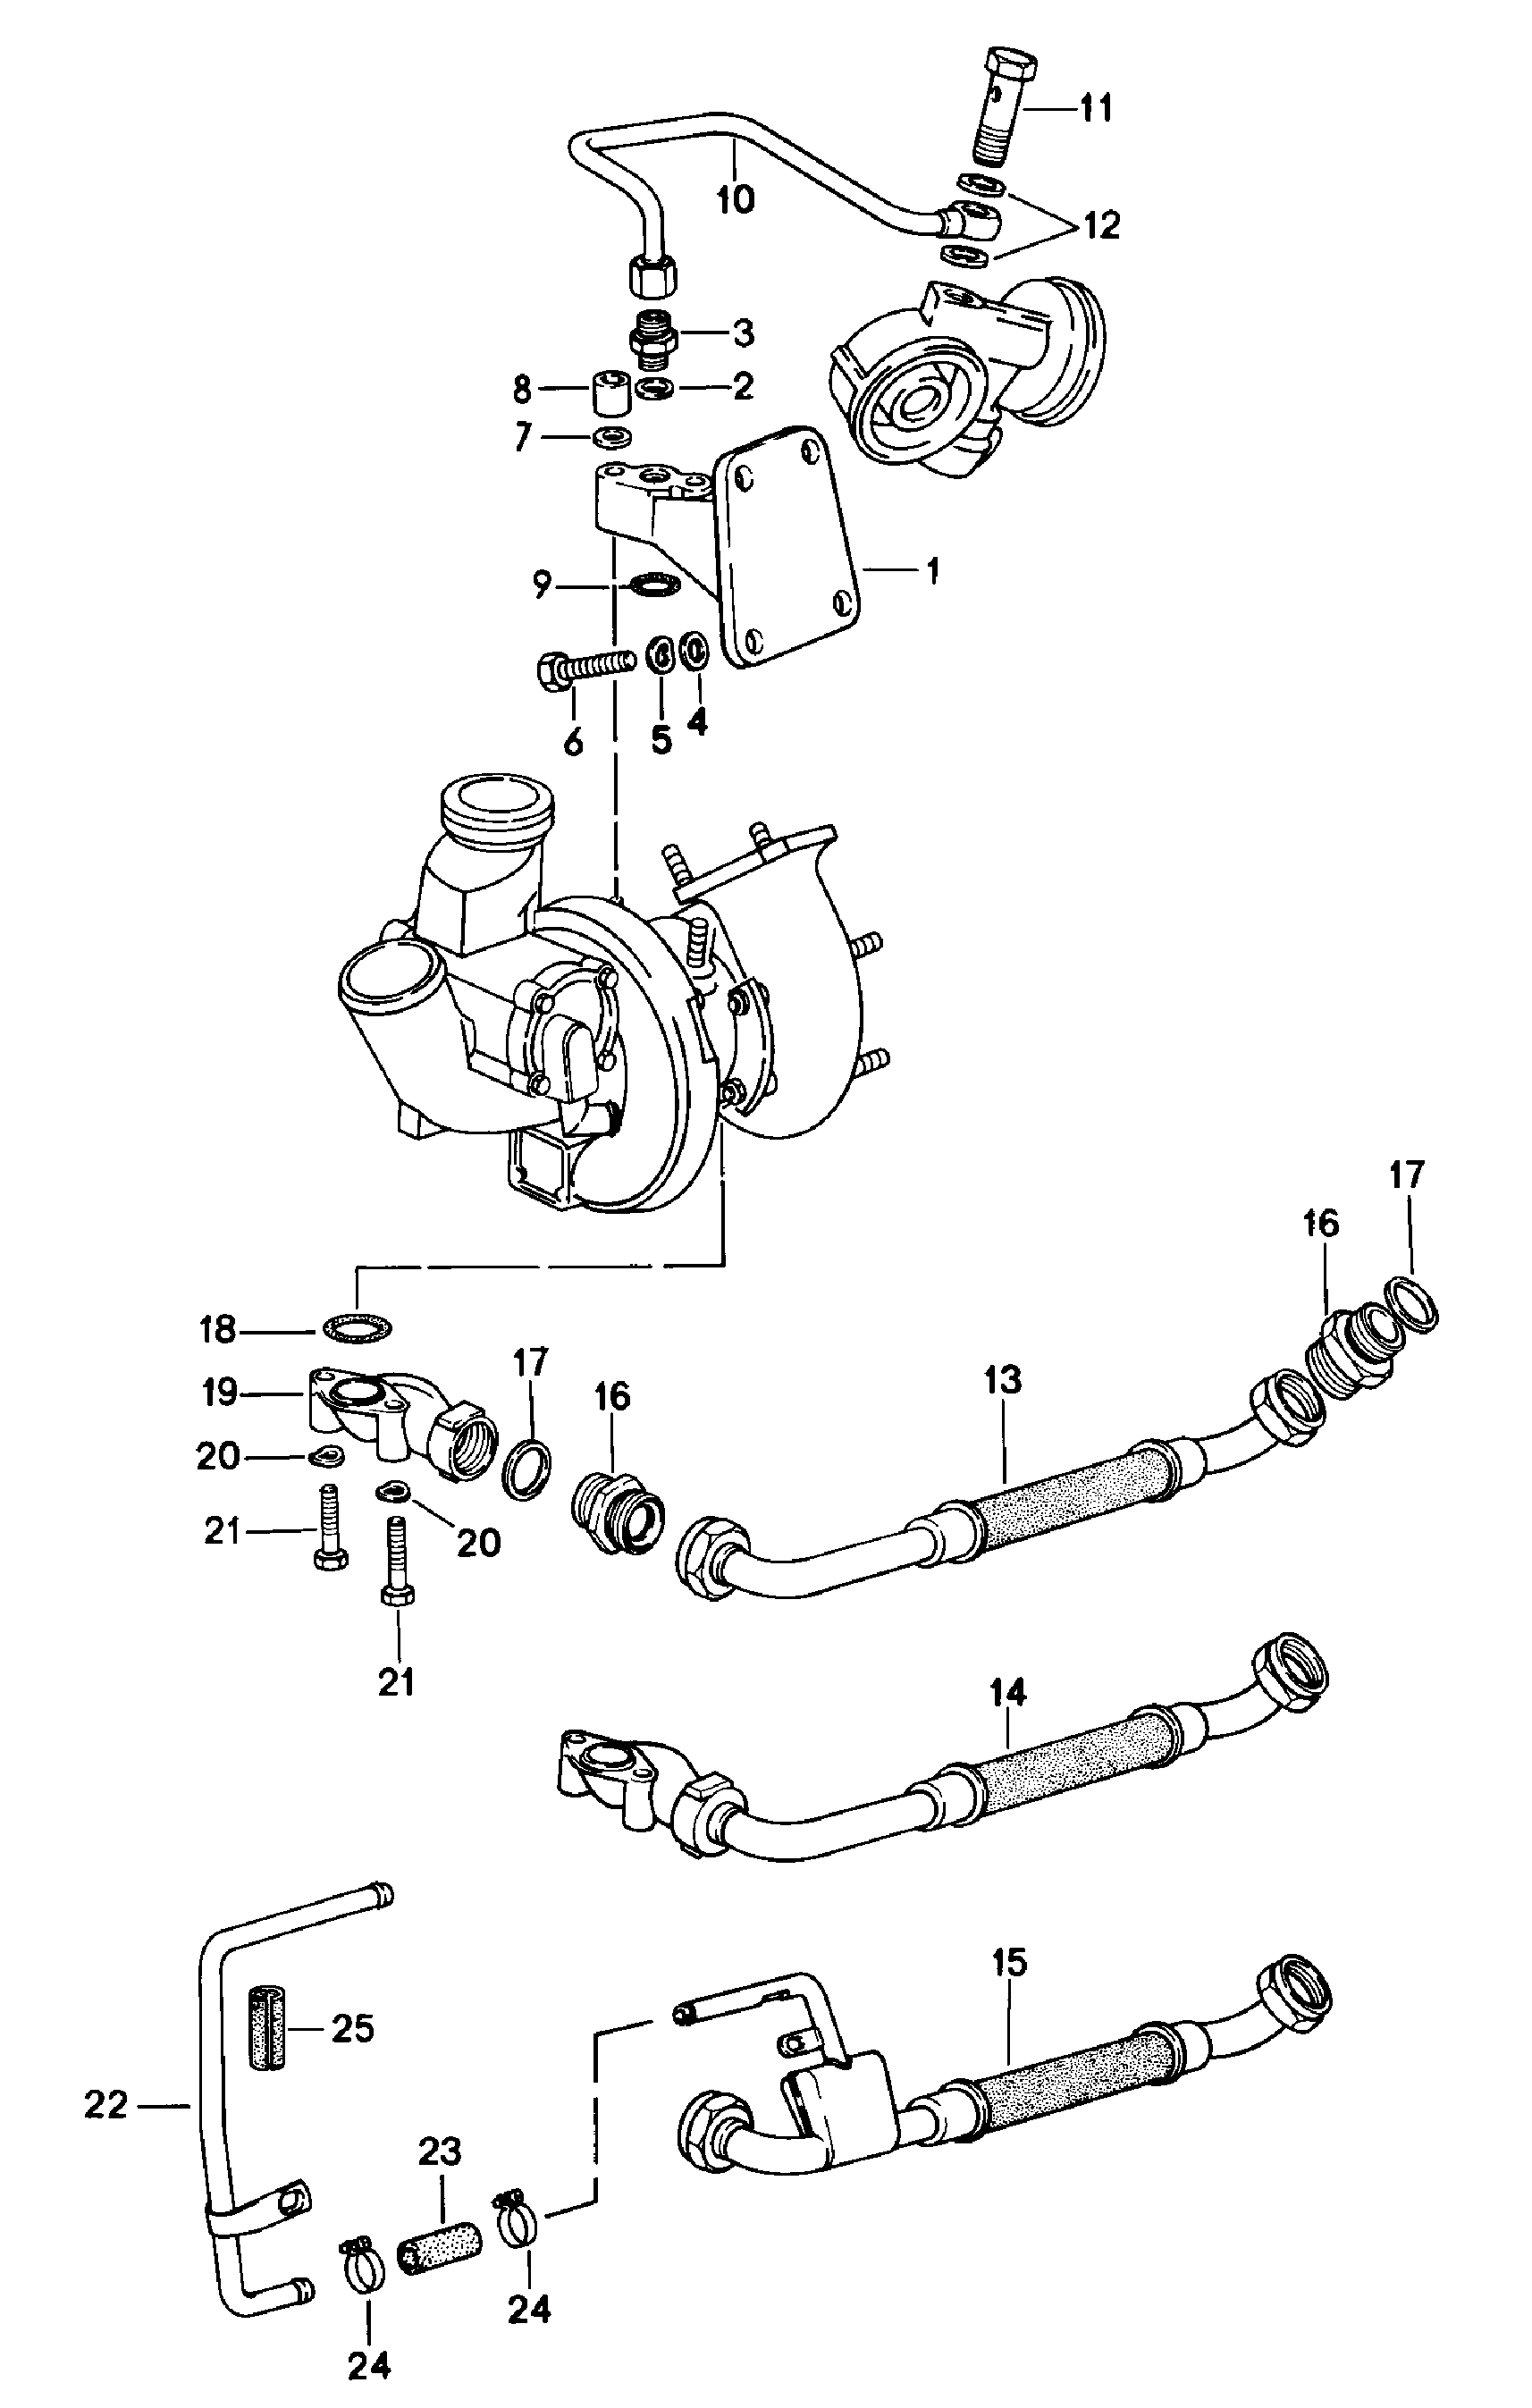 1978 porsche 924 wiring diagram 1989 honda accord stereo engine library